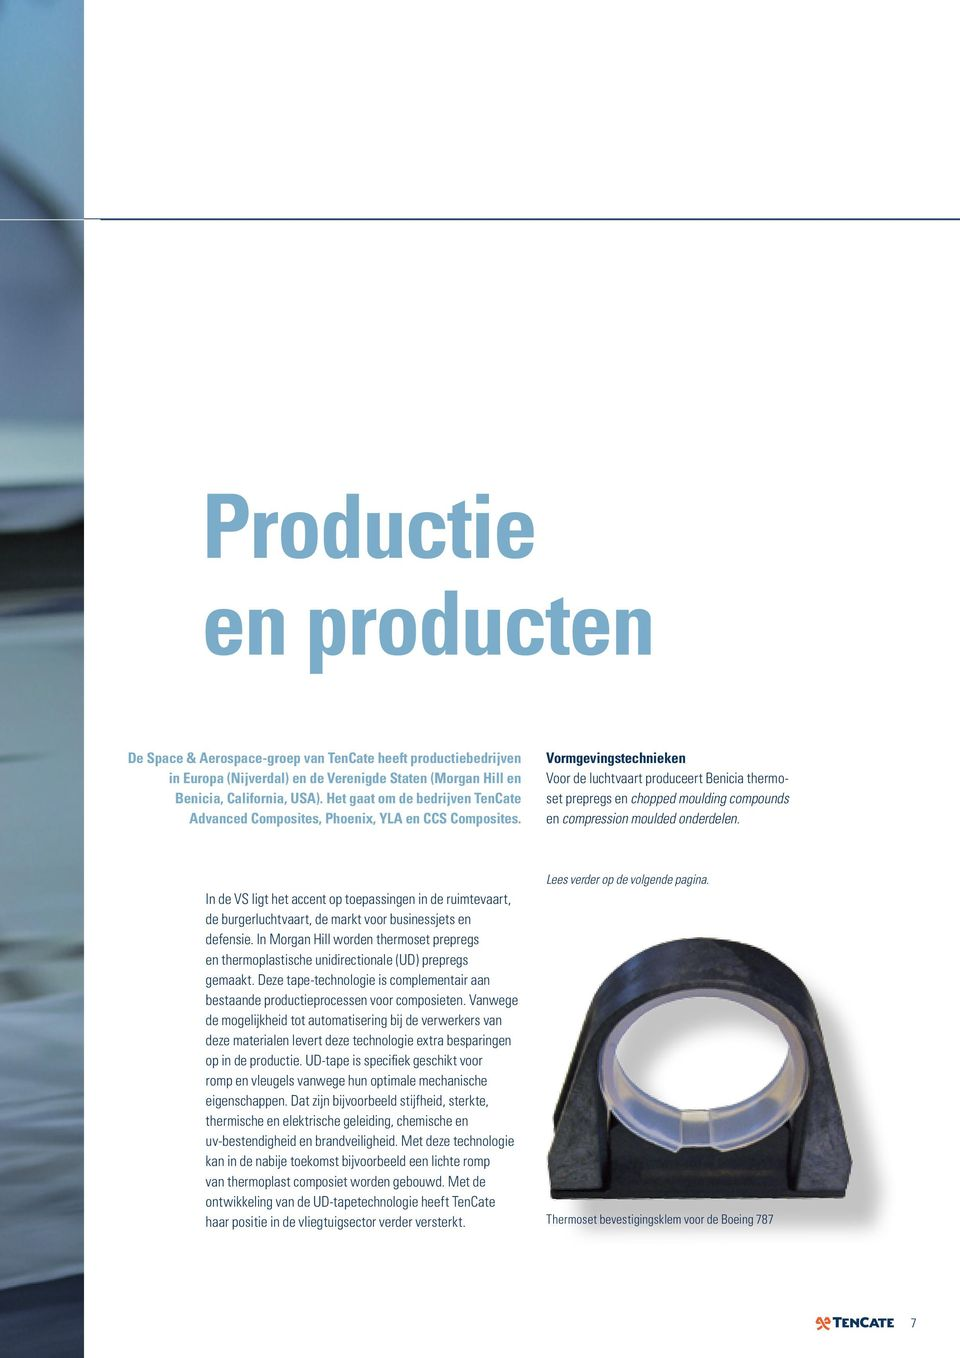 Vormgevingstechnieken Voor de luchtvaart produceert Benicia thermoset prepregs en chopped moulding compounds en compression moulded onderdelen.